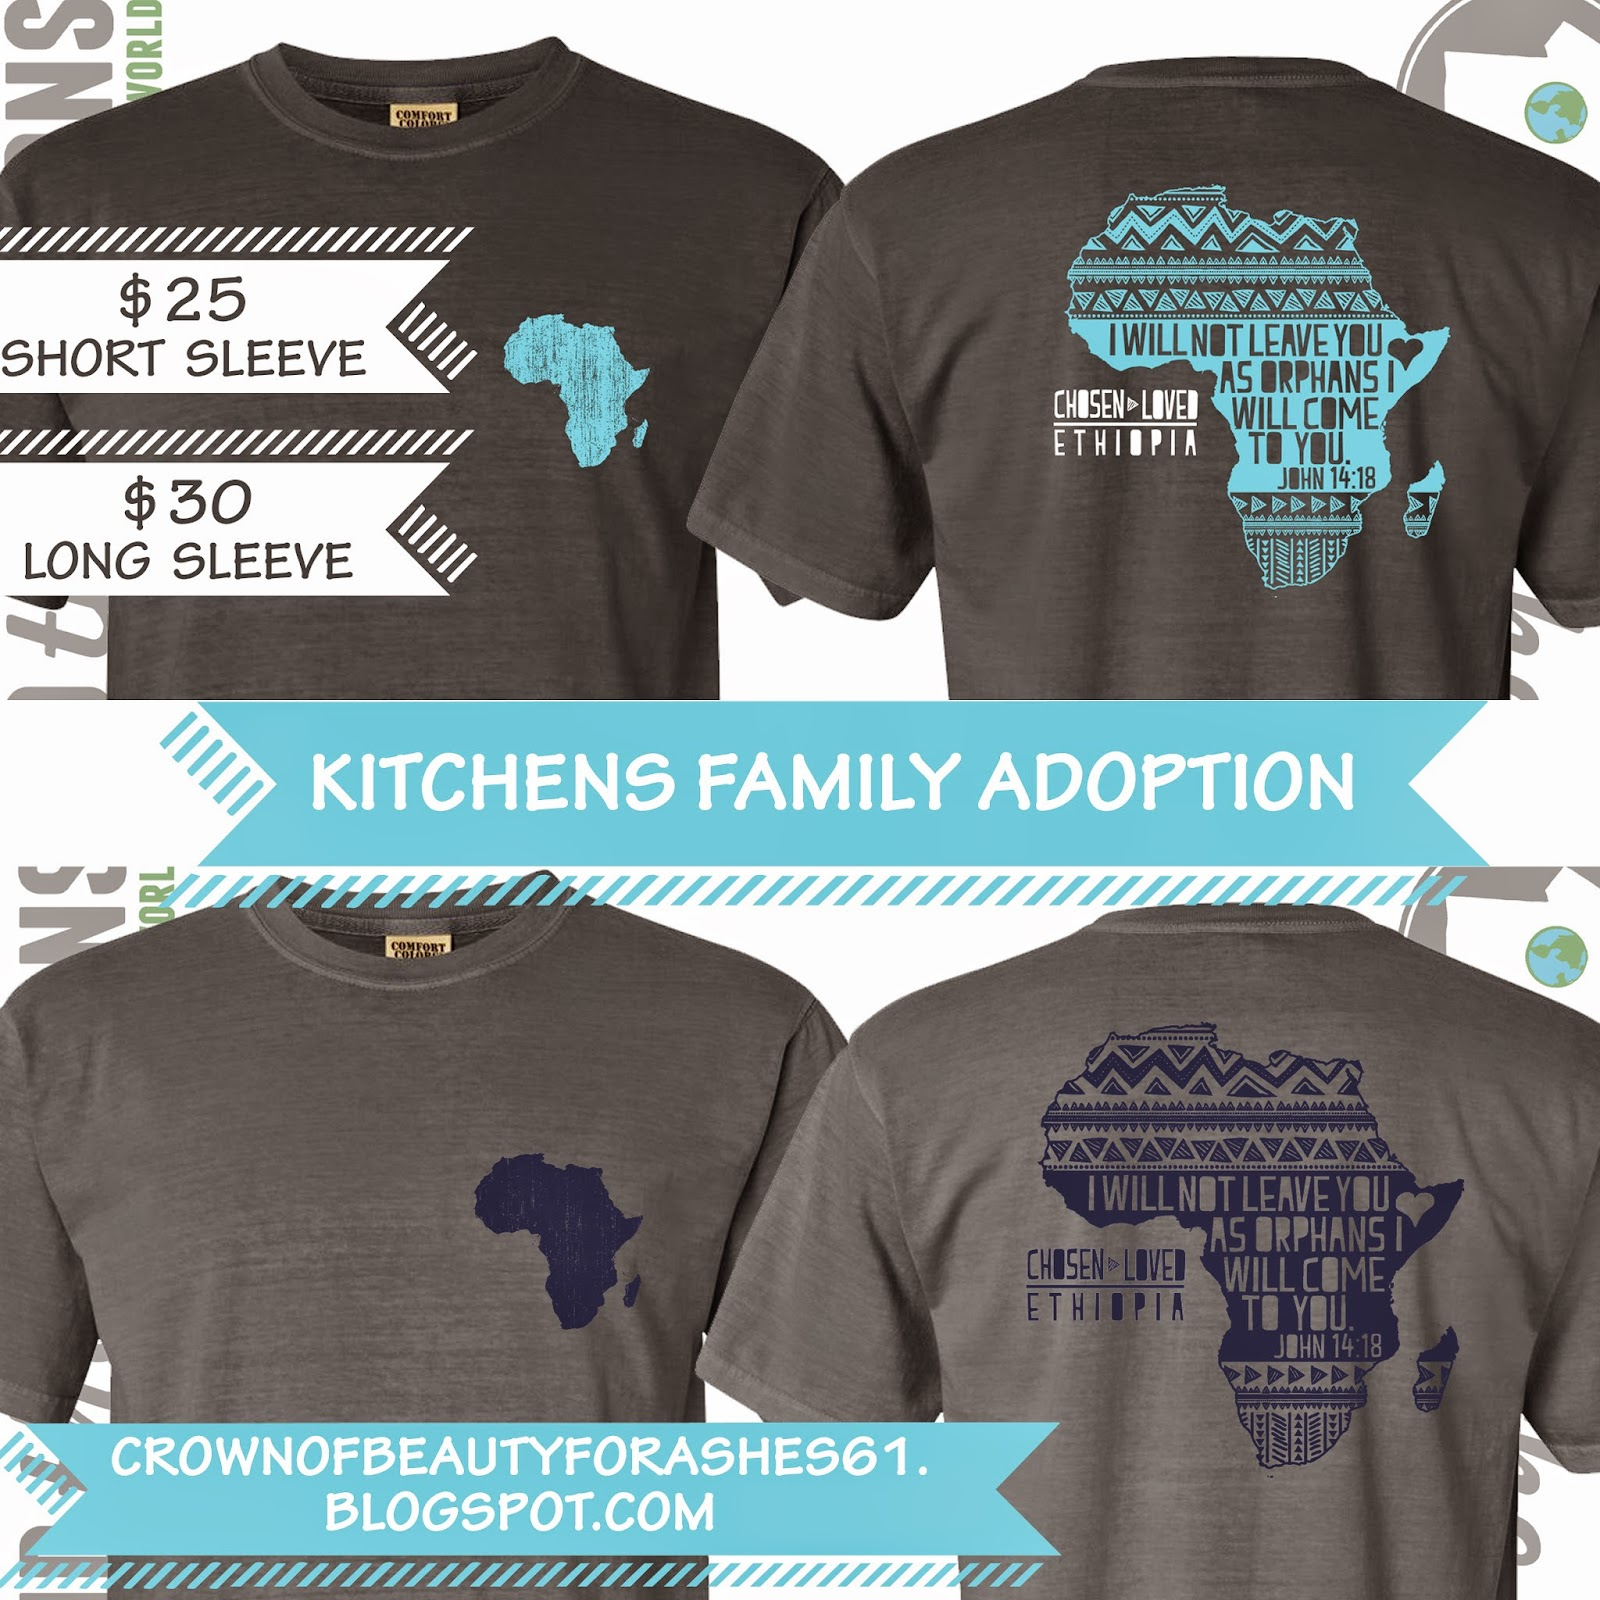 Design t shirt for fundraiser - Dark Grey T Shirt With Teal Design Or Light Grey T Shirt With Navy Design